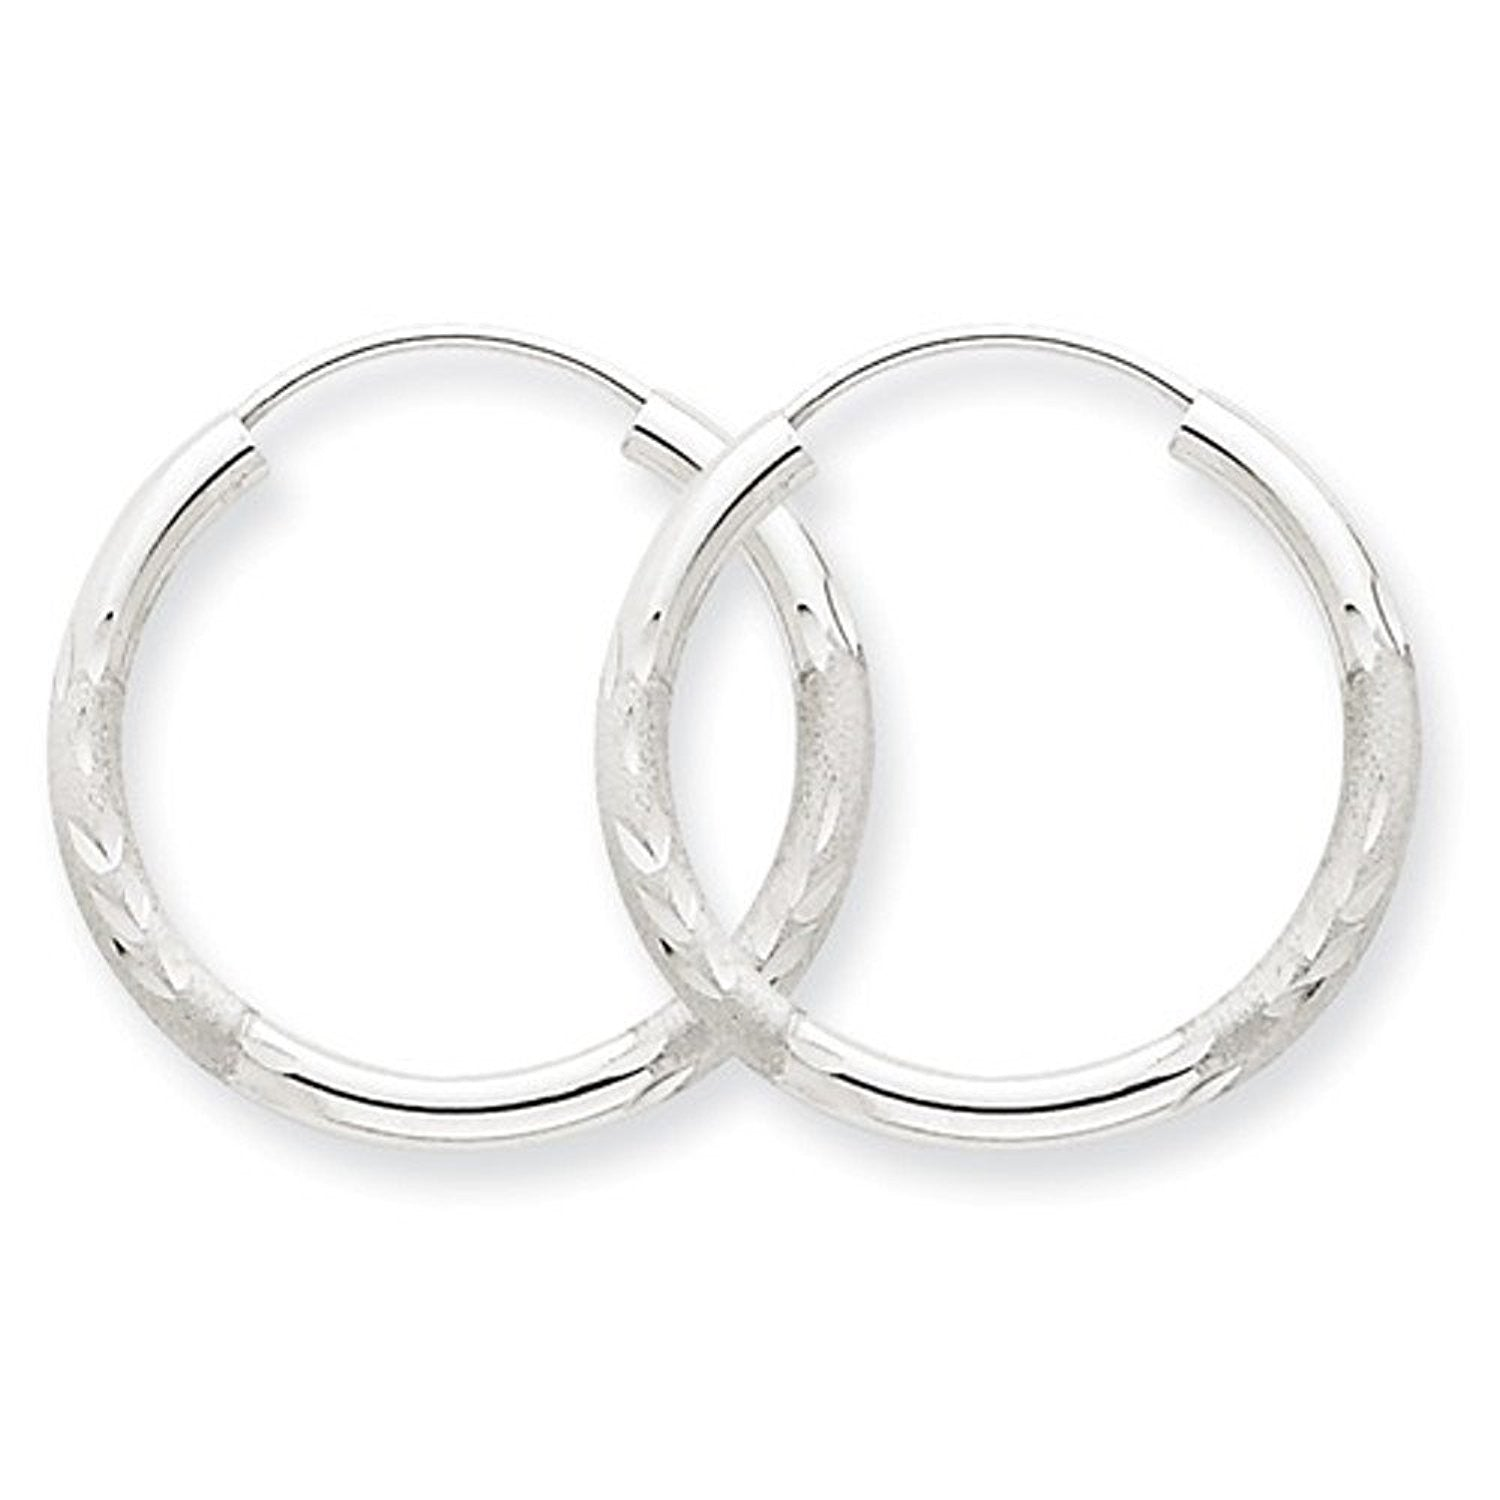 14K White Gold 20mm Satin Textured Round Endless Hoop Earrings